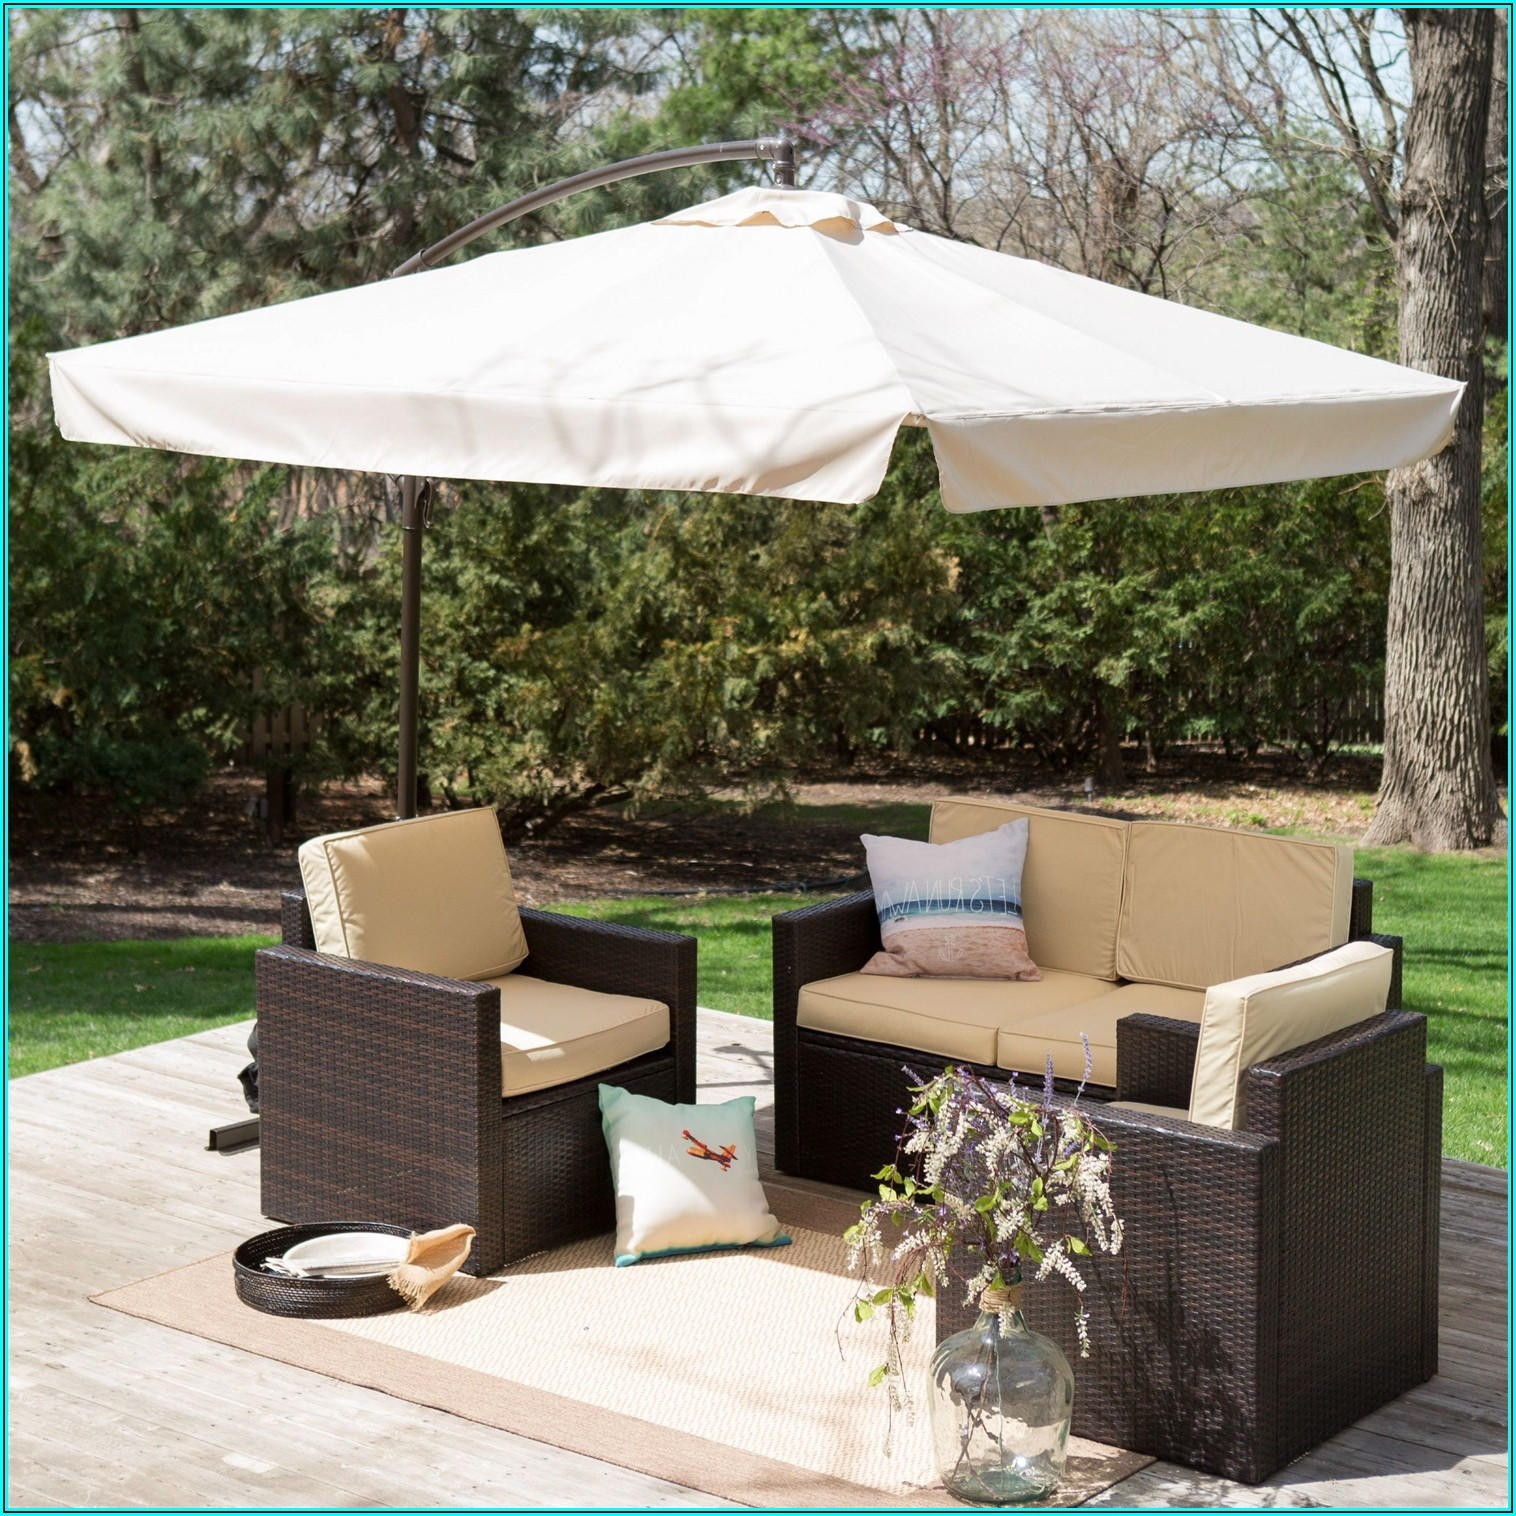 8 Foot Square Patio Umbrella